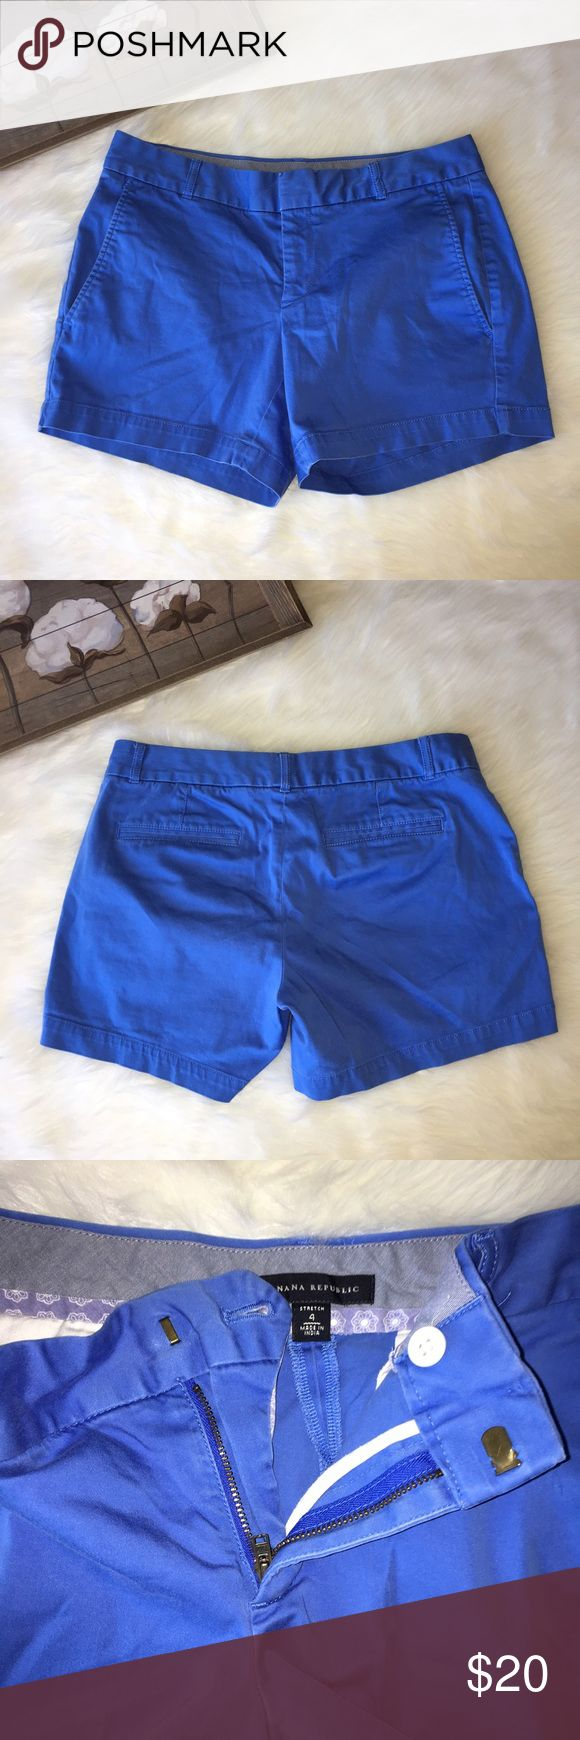 Banana Republic Blue Causal Shorts Sz 4 Super chic and stylish blue Banana Republic size 4 causal shorts. In excellent preowned condition. Banana Republic Shorts